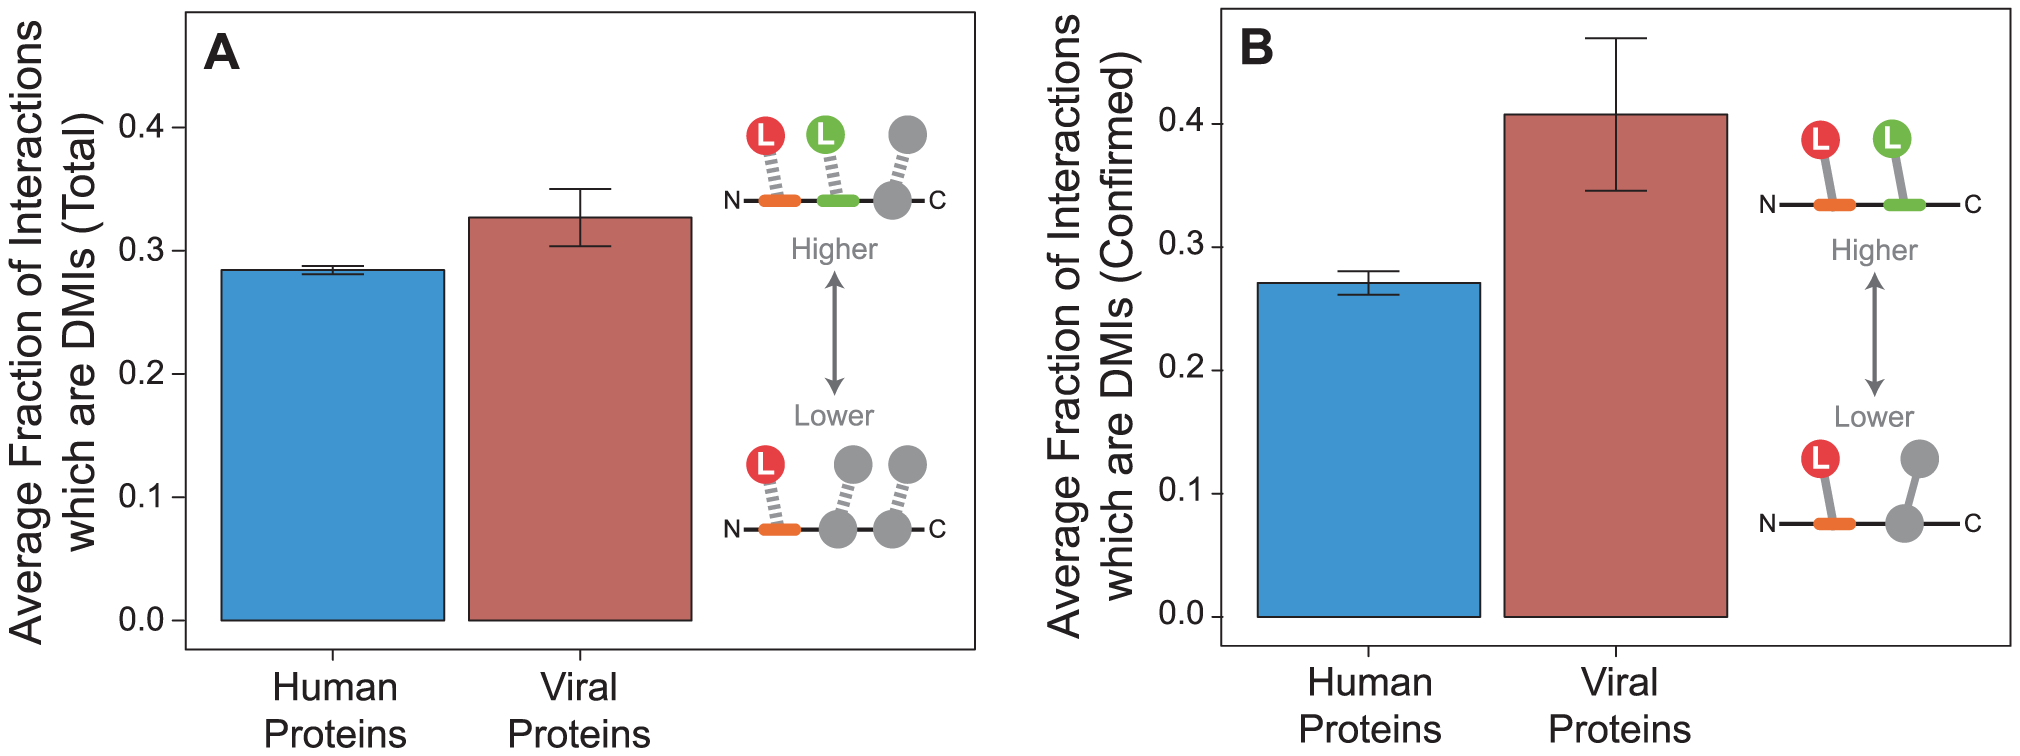 Viral proteins have a higher fraction of domain-motif interactions (DMIs) than human proteins.